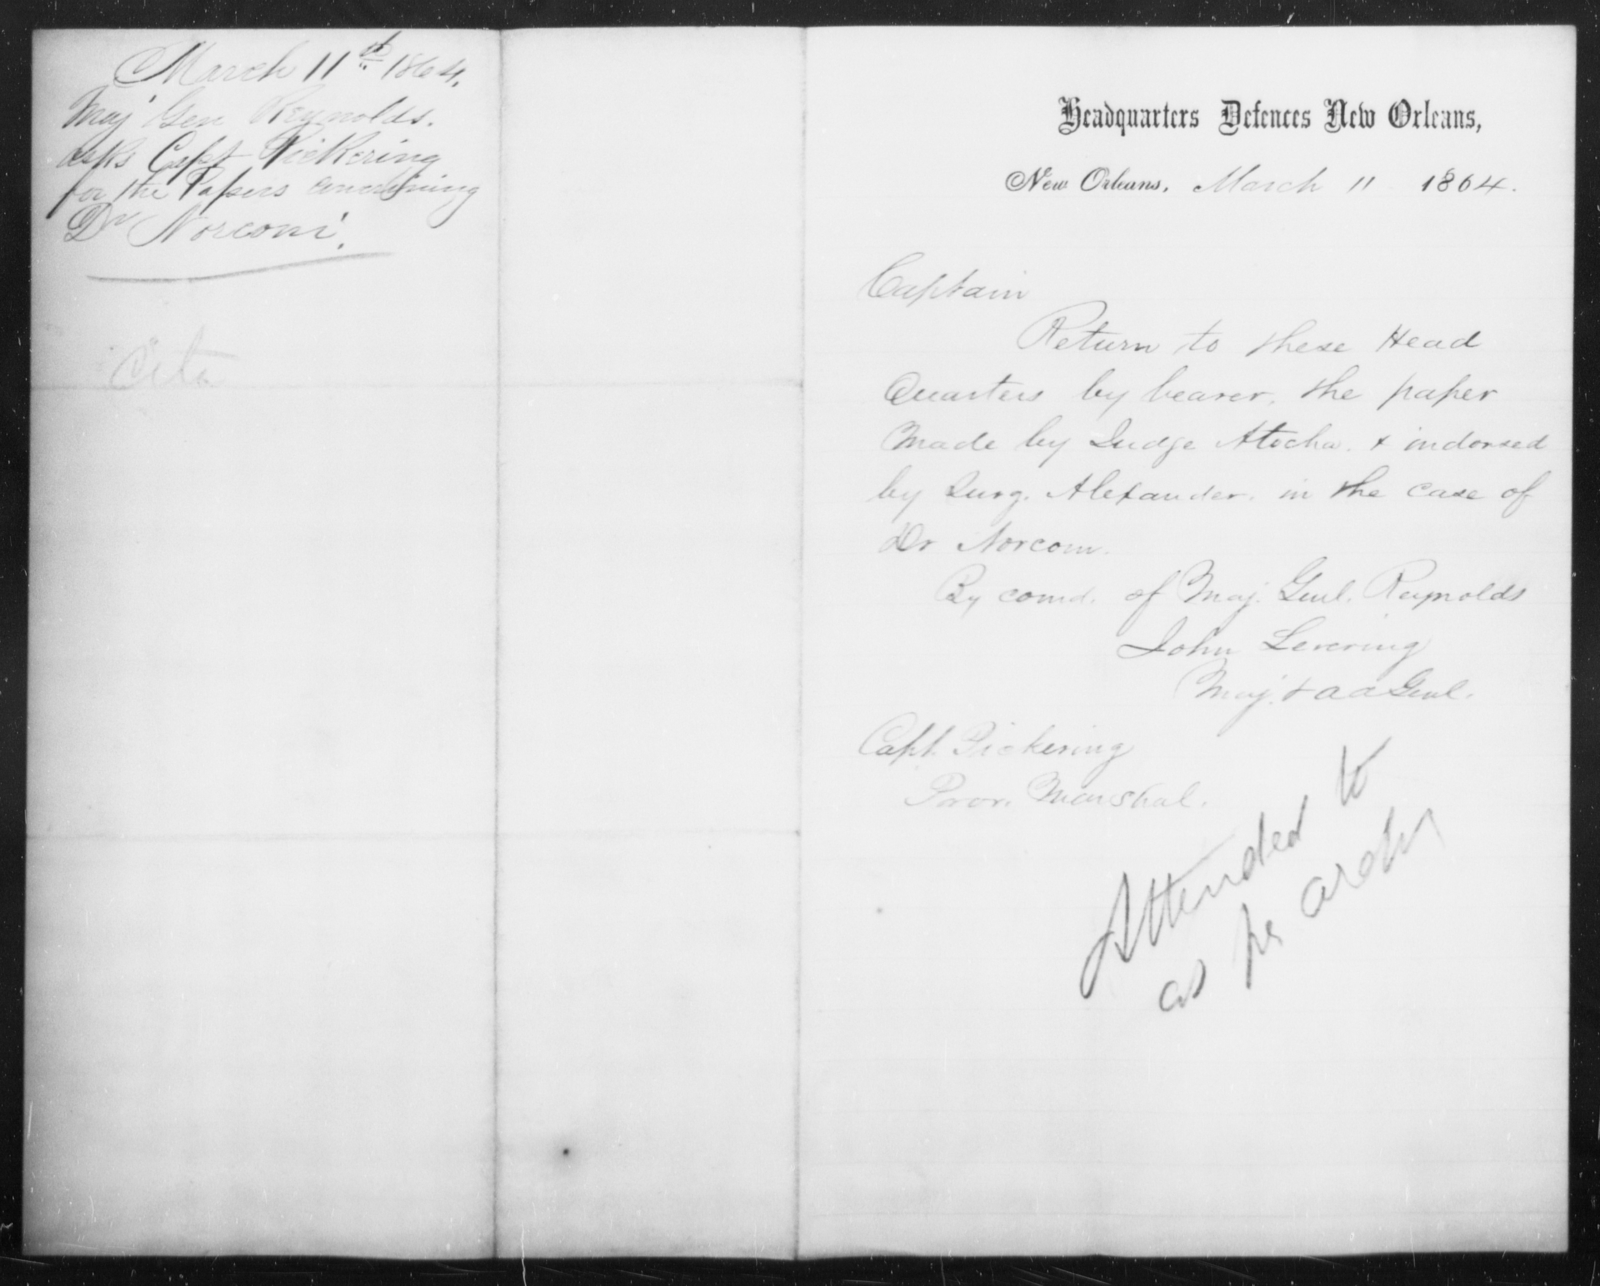 Norconi, [Blank] - State: [Blank] - Year: 1864